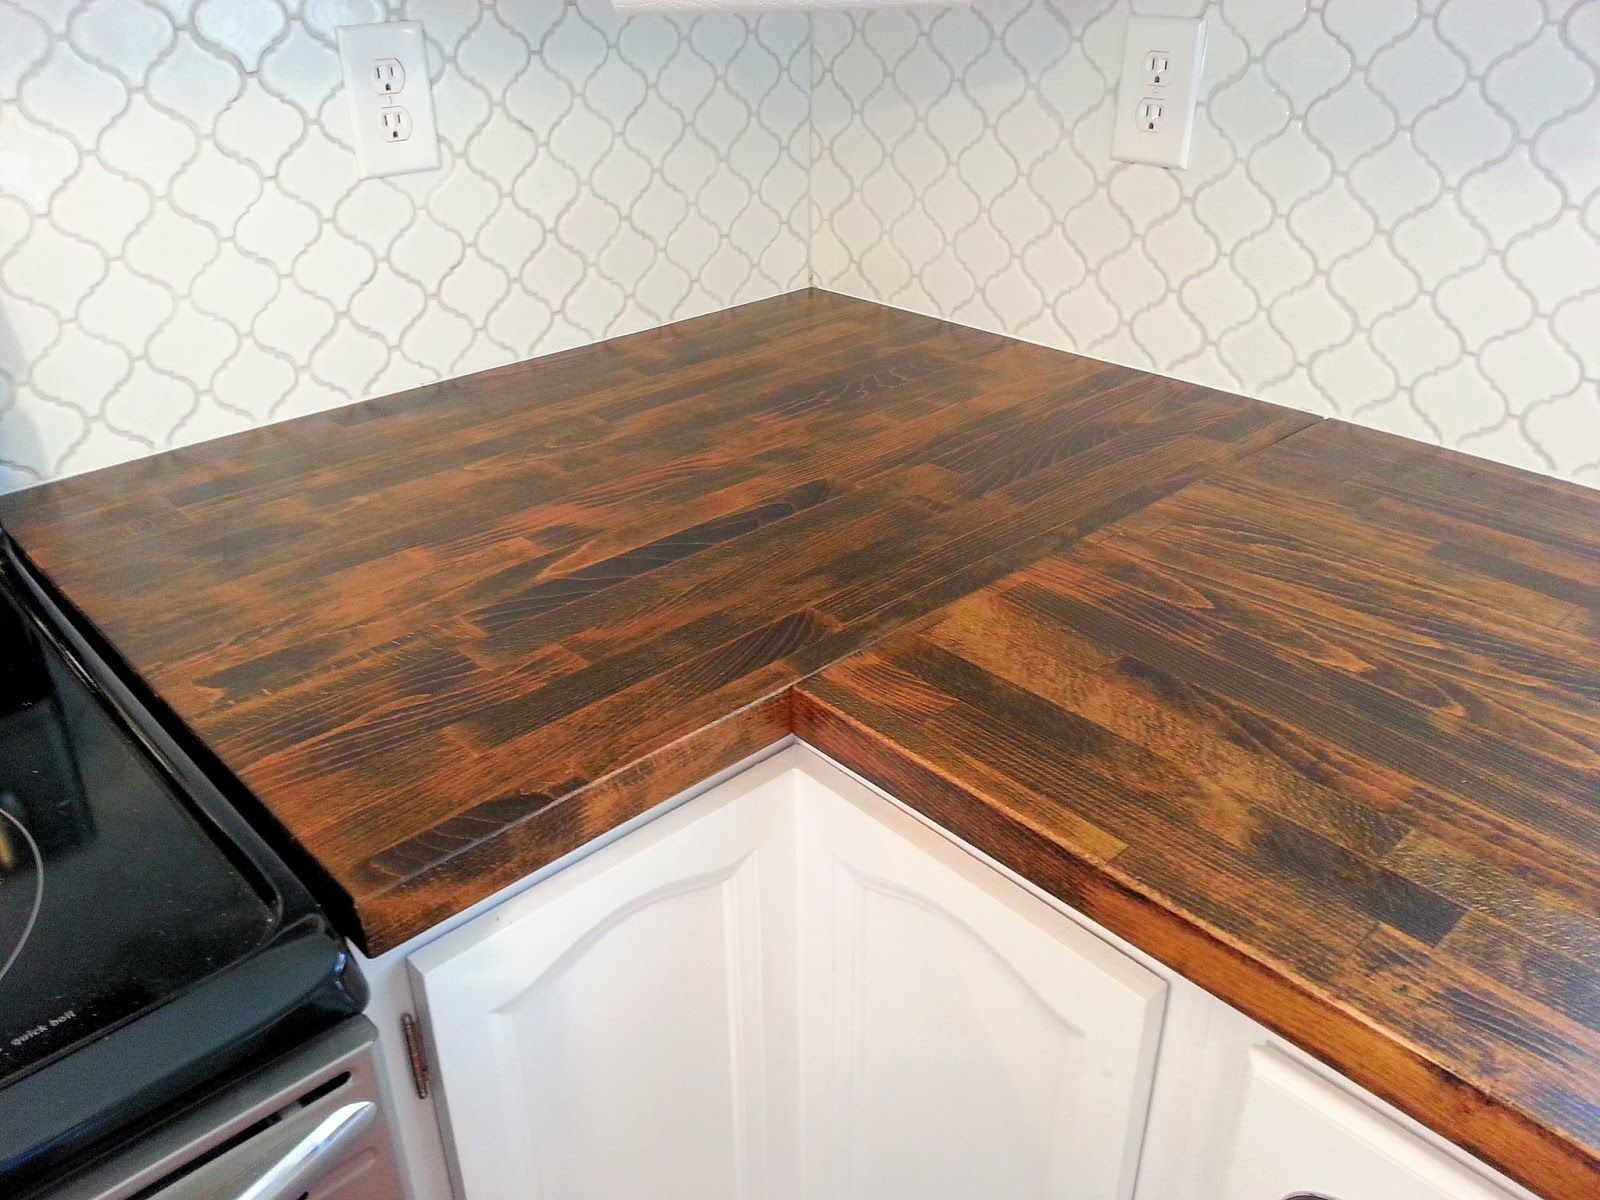 Ikea Wood Kitchen Countertops ▻ kitchen countertop : swag ikea kitchen countertops tested ikea